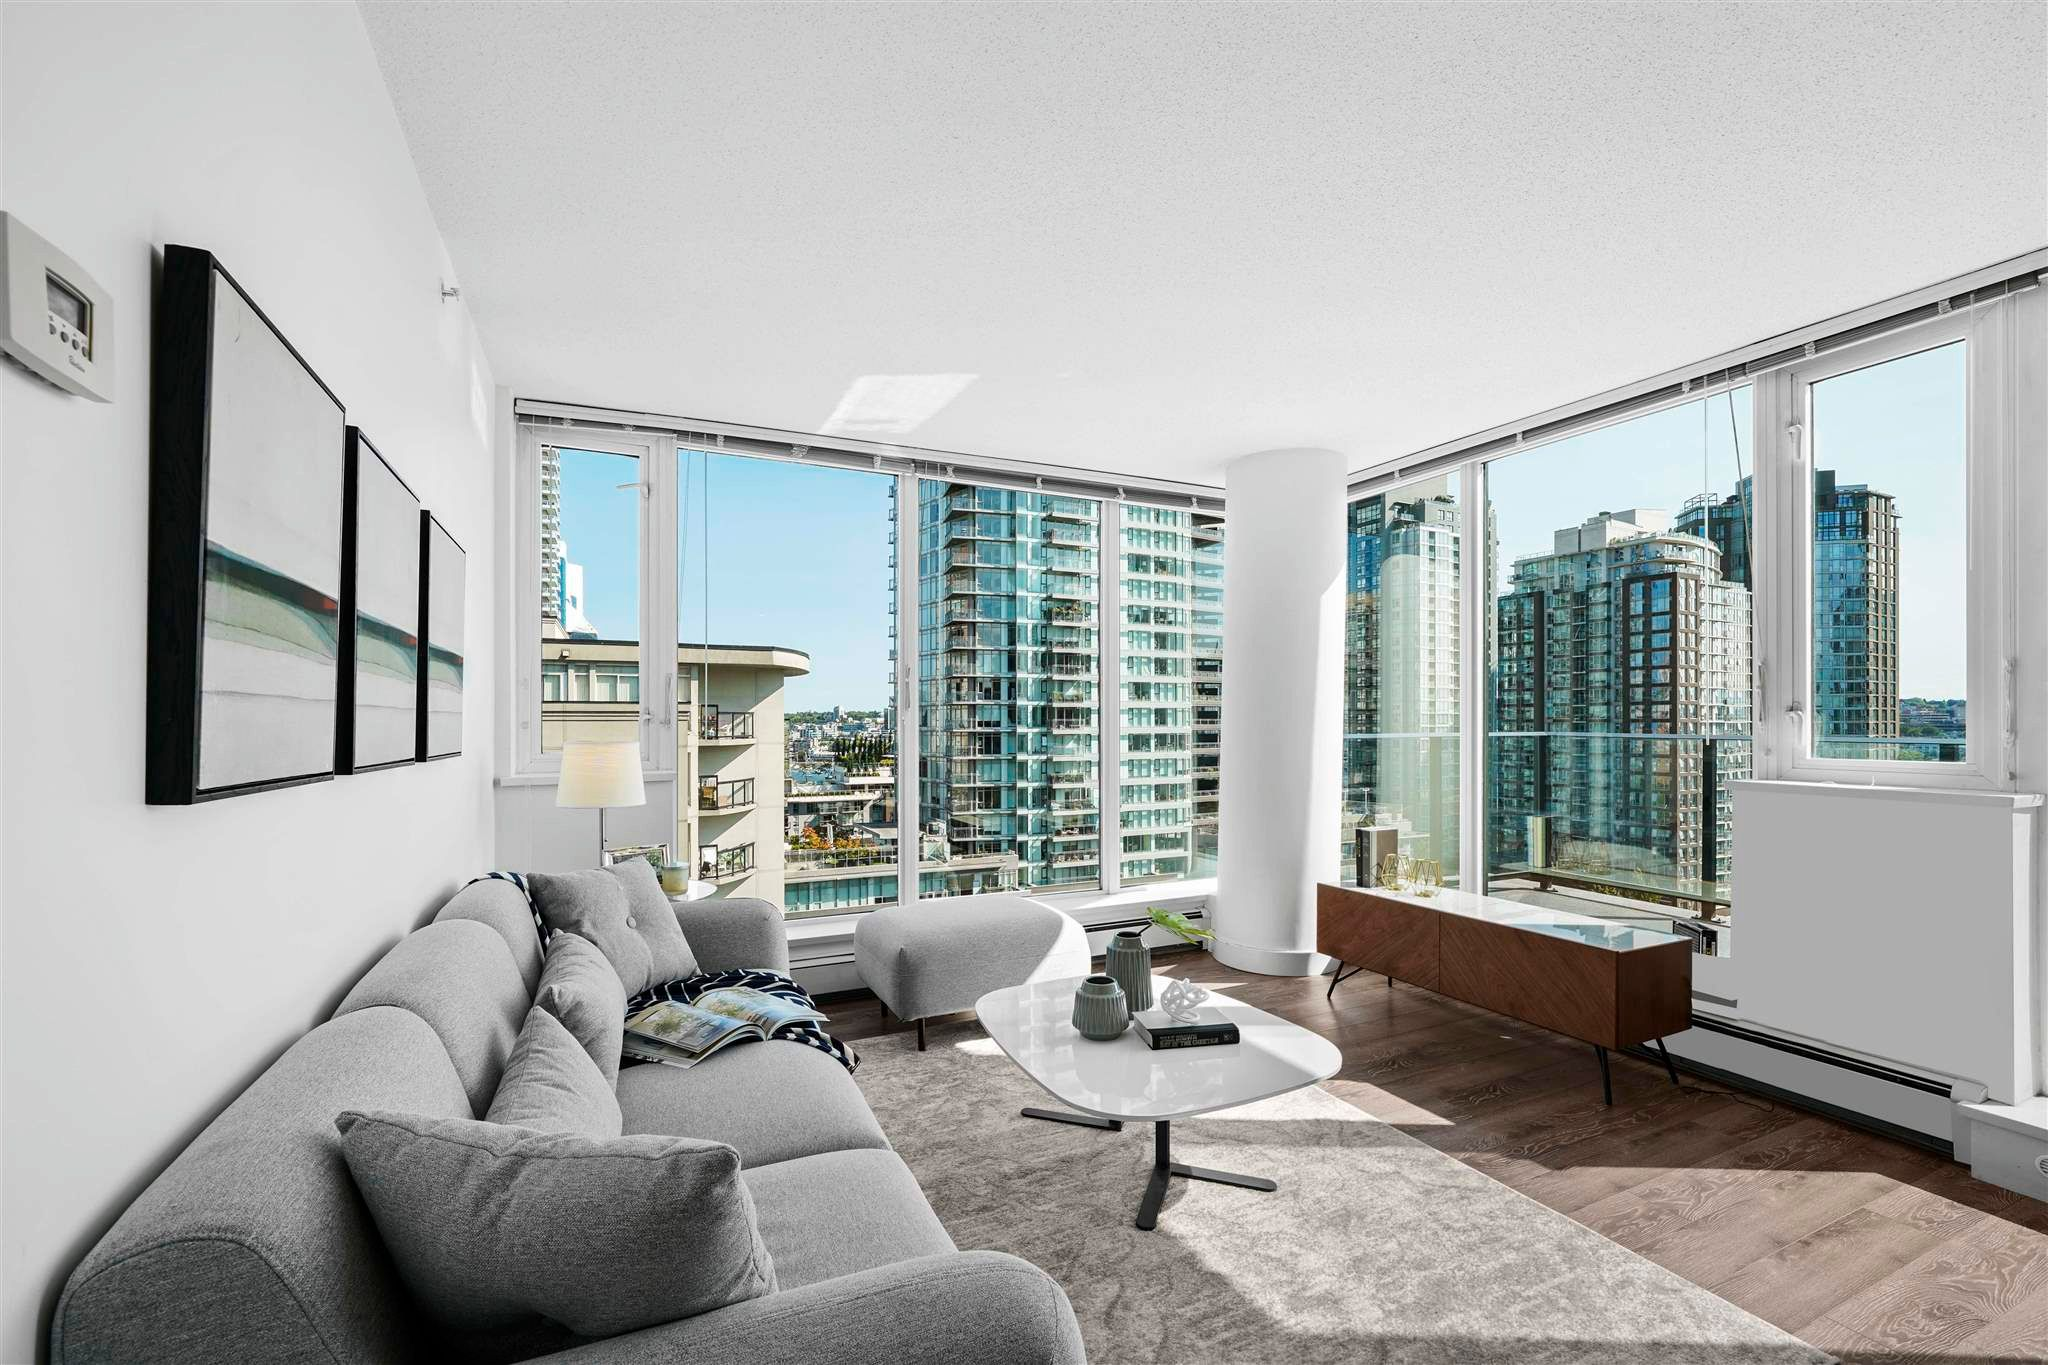 Main Photo: 1109 1325 ROLSTON Street in Vancouver: Downtown VW Condo for sale (Vancouver West)  : MLS®# R2605082